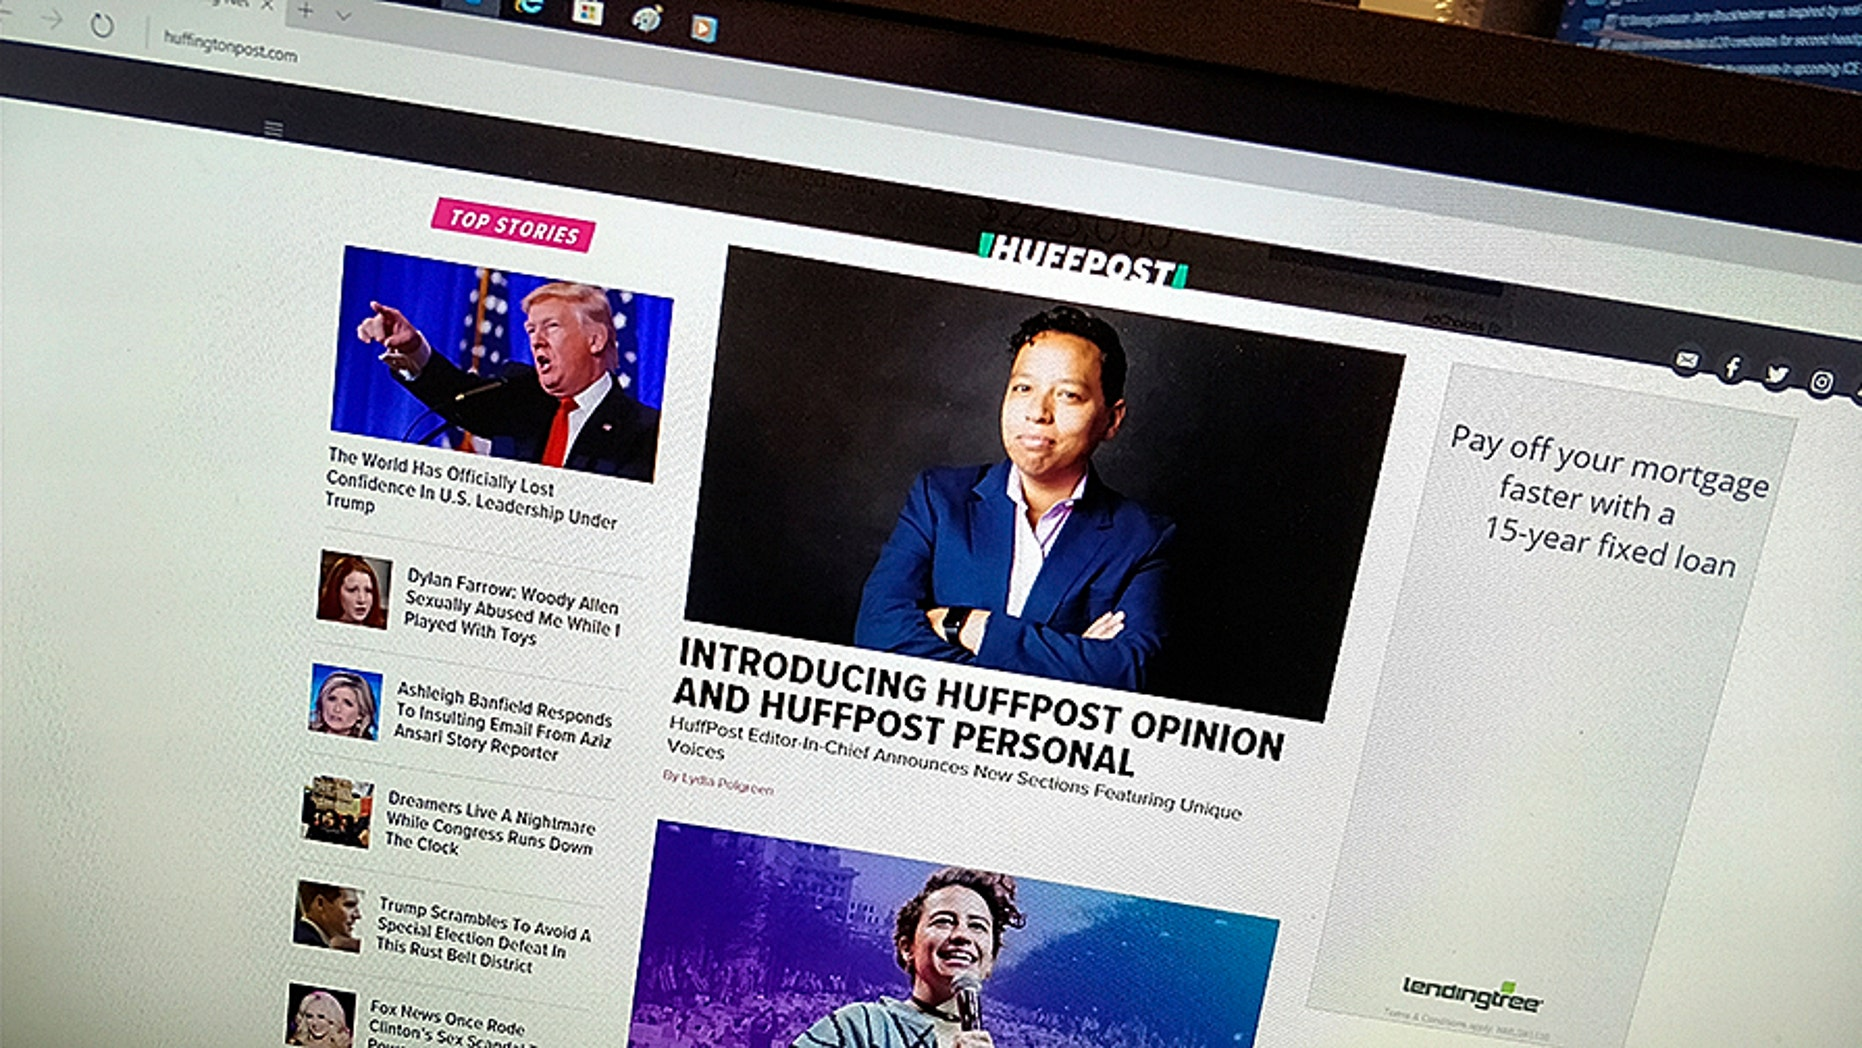 HuffPost Editor in Chief Lydia Polgreen scrapped the site's contributor blogging network.